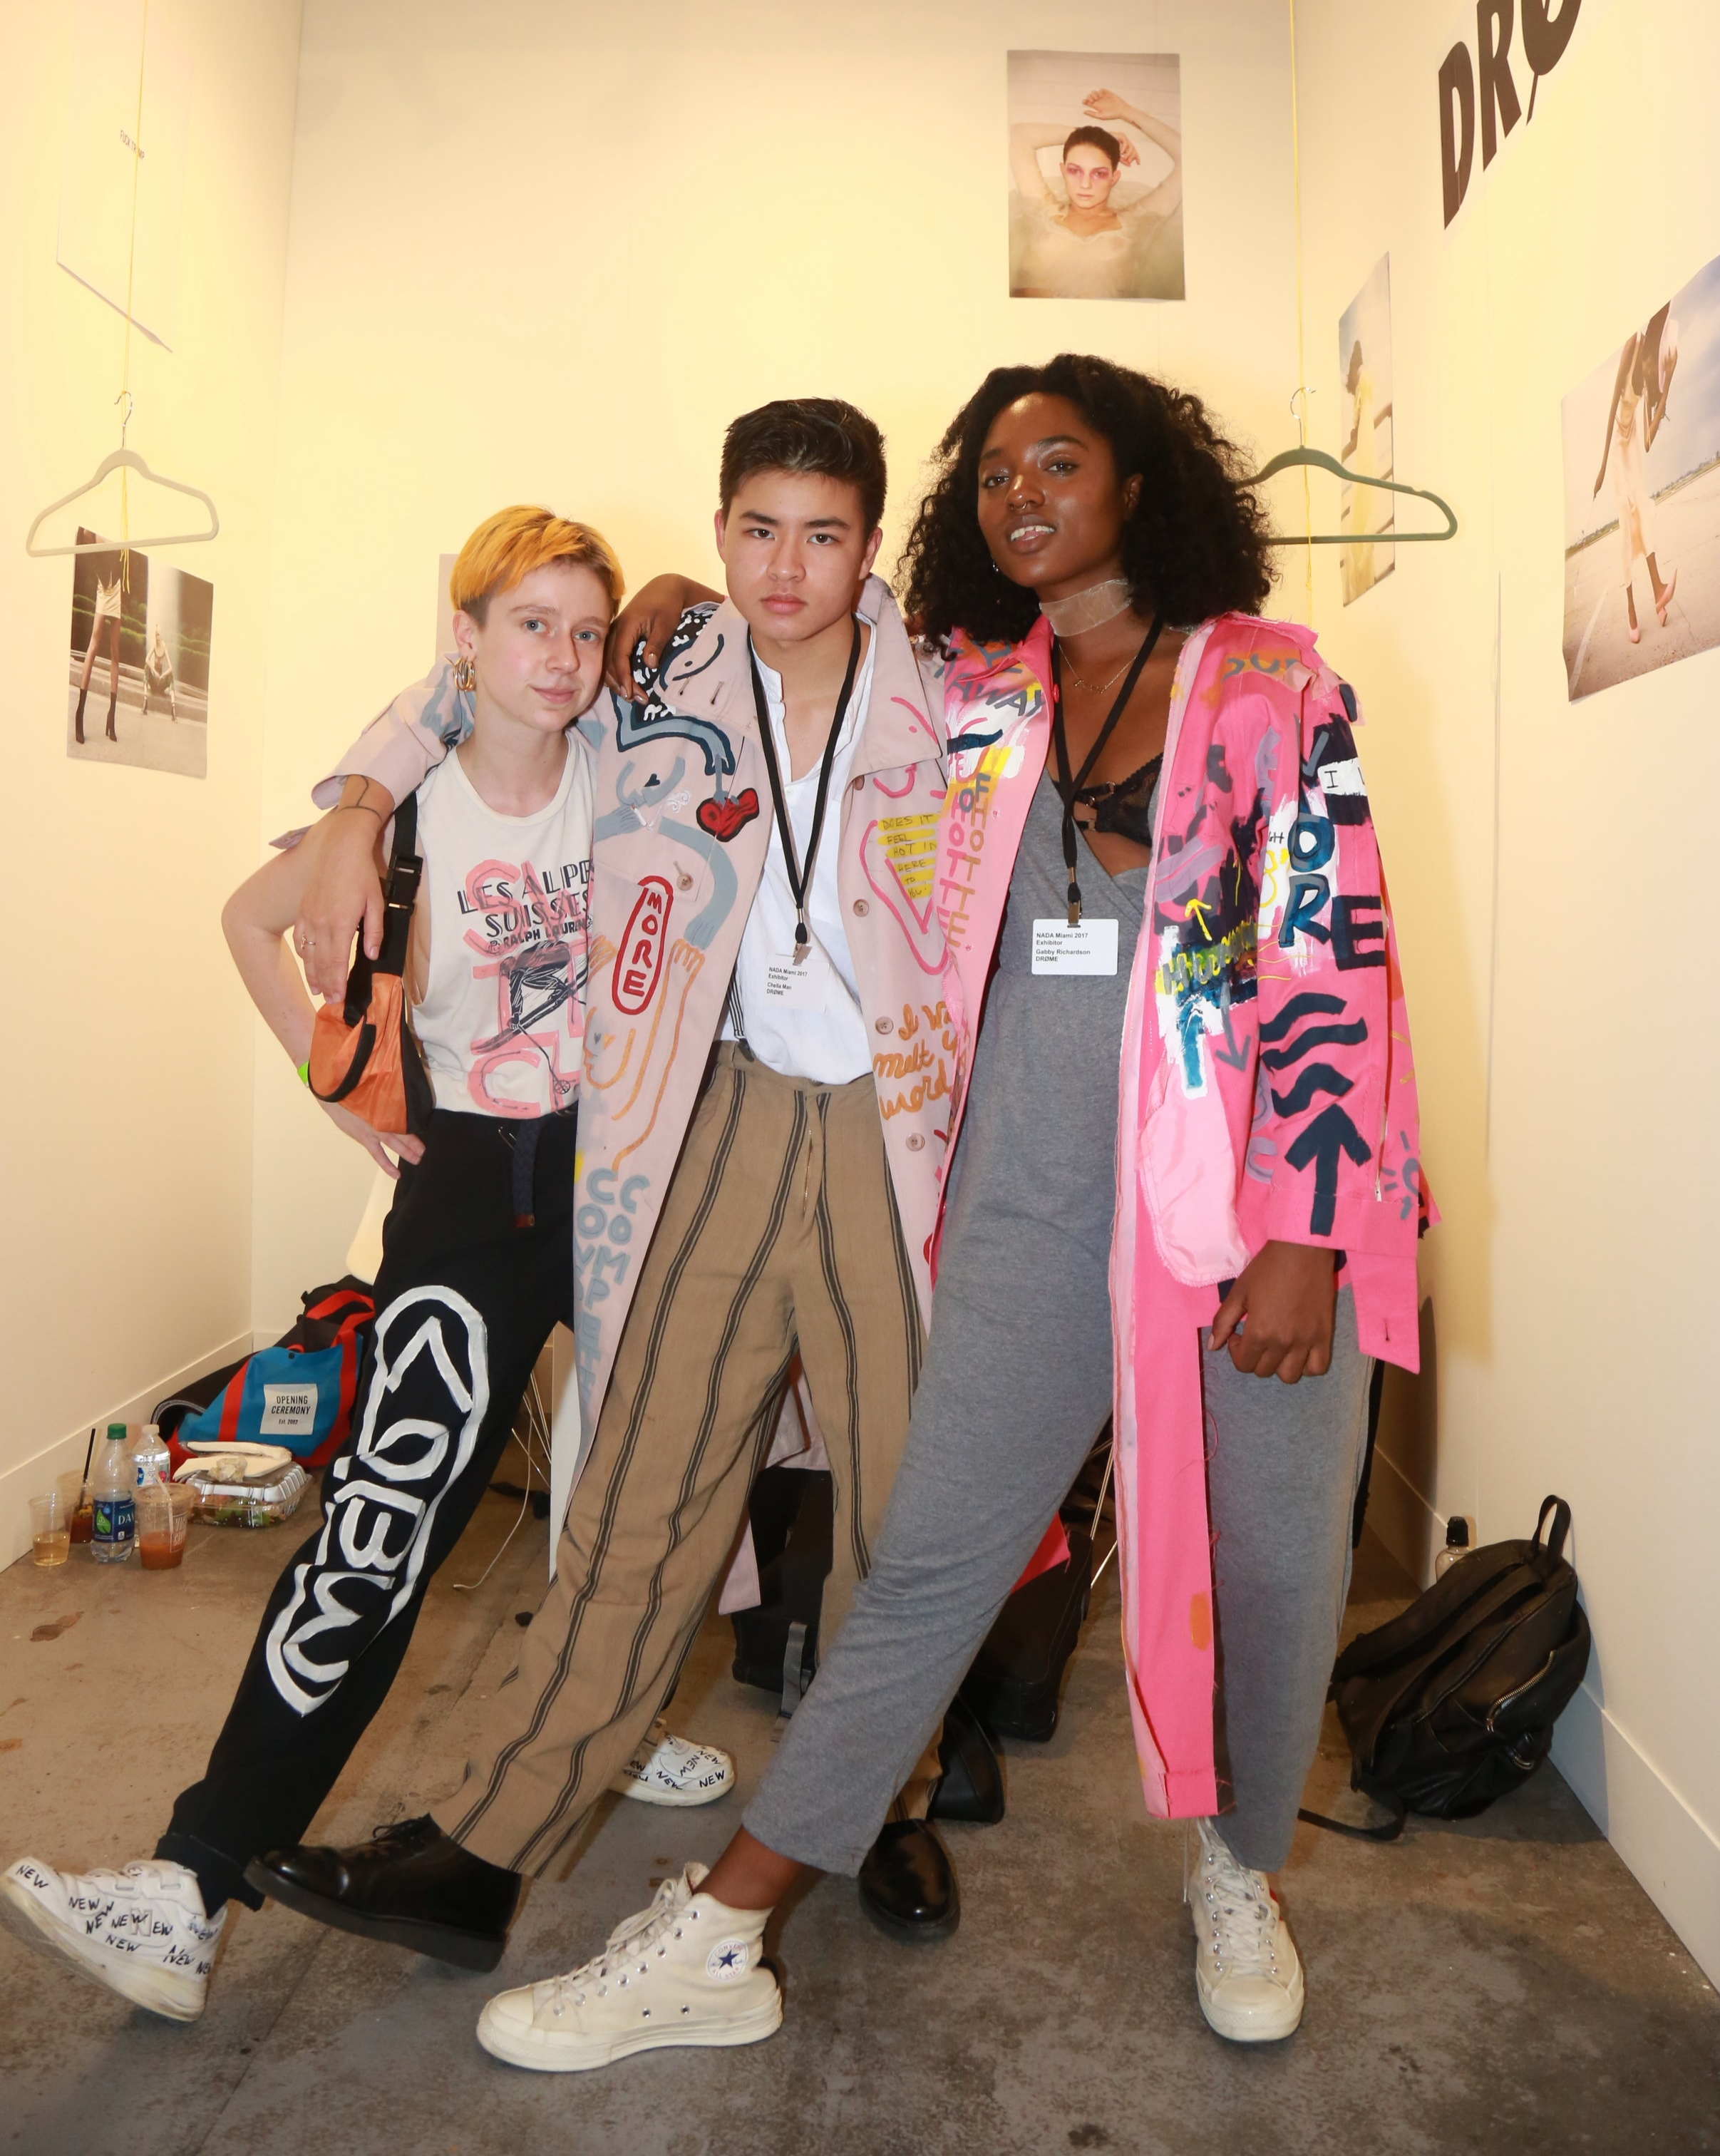 MI Leggett with Chella Man & Gabby Richardson at DRØME booth